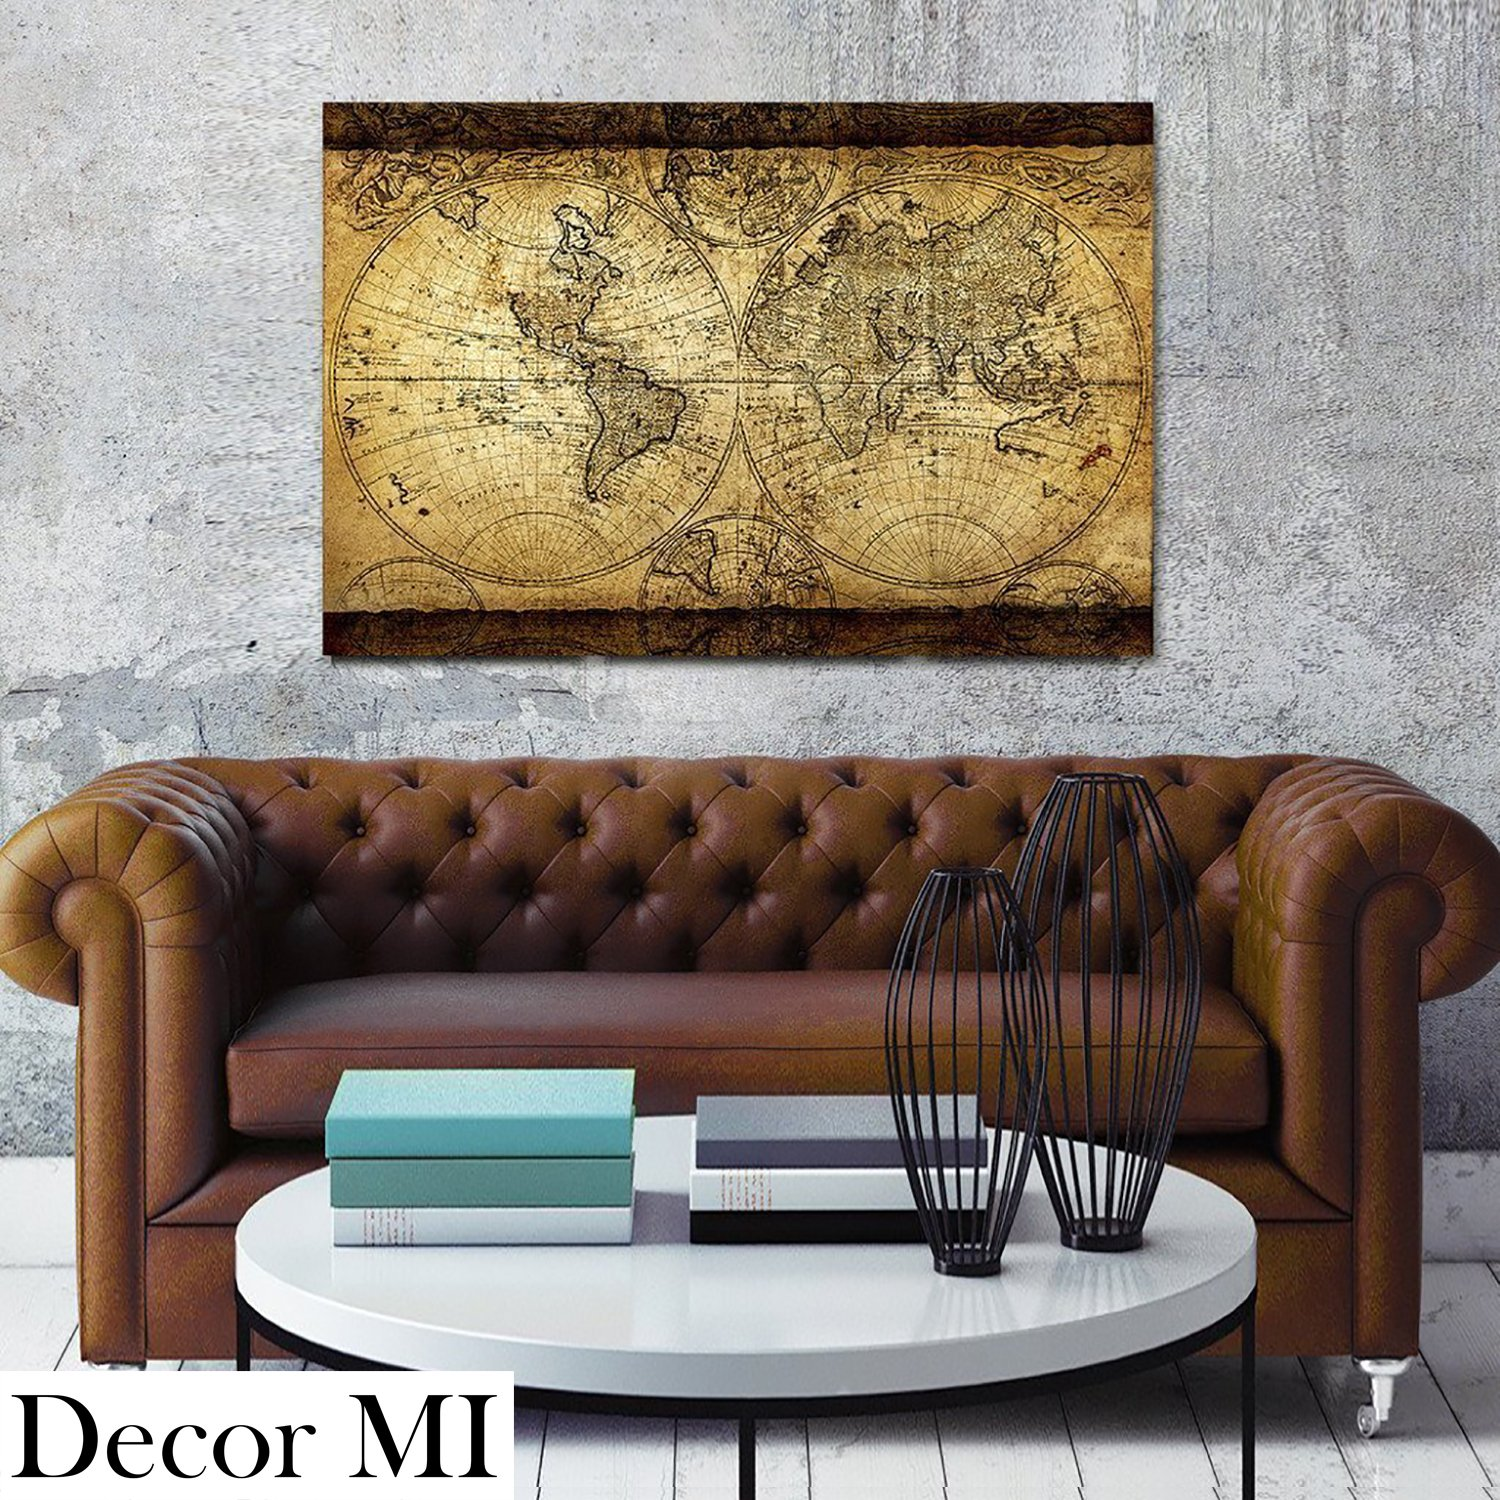 Canvas wall art vintage retro world map for living room office home vintage world map canvas wall art retro map of the world canvas prints framed gumiabroncs Image collections